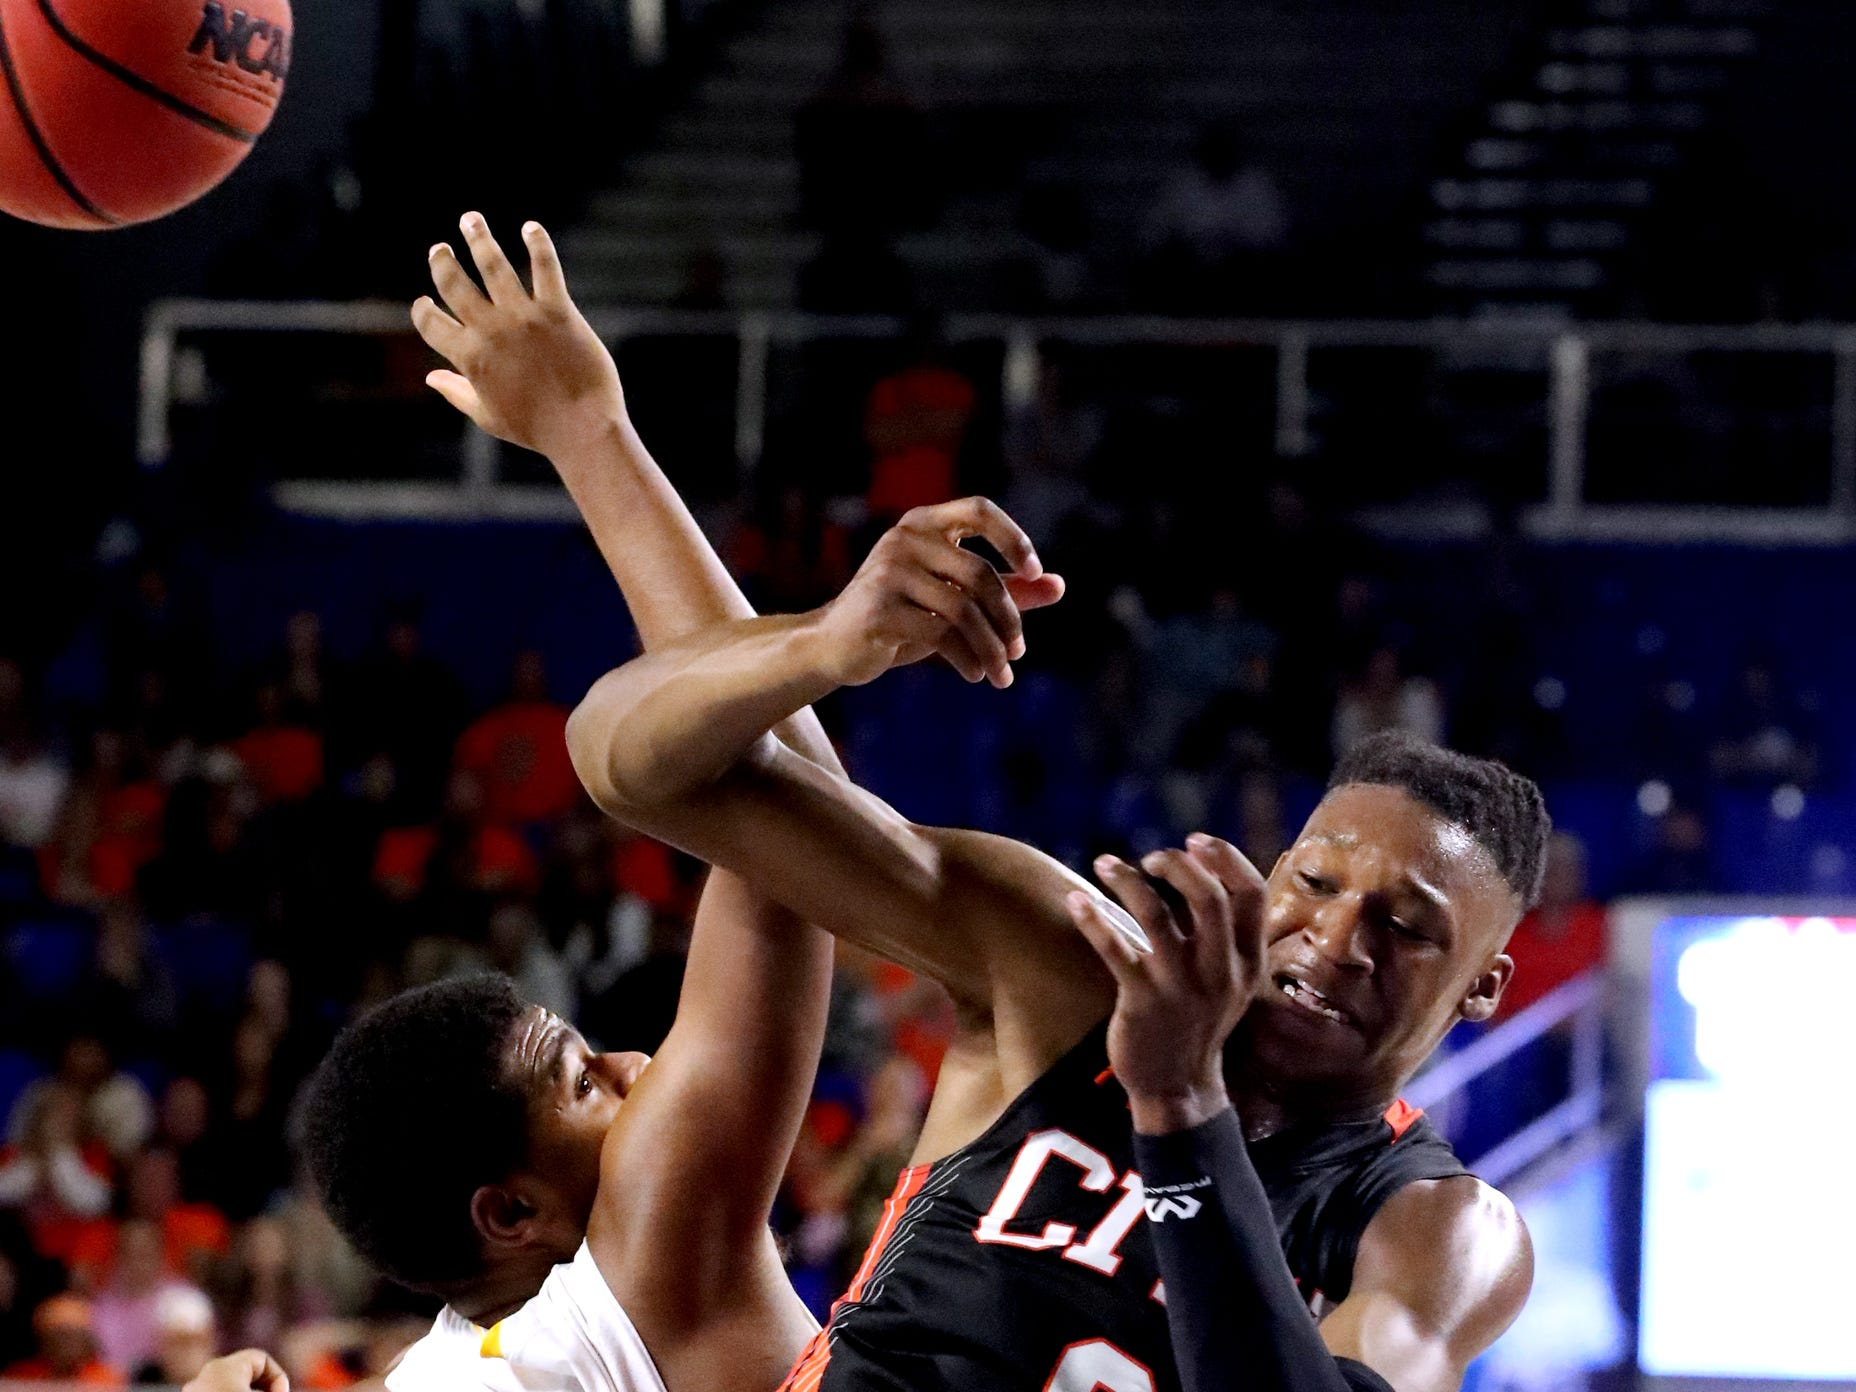 Humboldt's Reginald Manley (52) and Fayetteville's Julius Dixon (0) both go for a rebound during the quarterfinal round of the TSSAA Class A Boys State Tournament, on Thursday, March 14, 2019, at Murphy Center in Murfreesboro, Tenn.